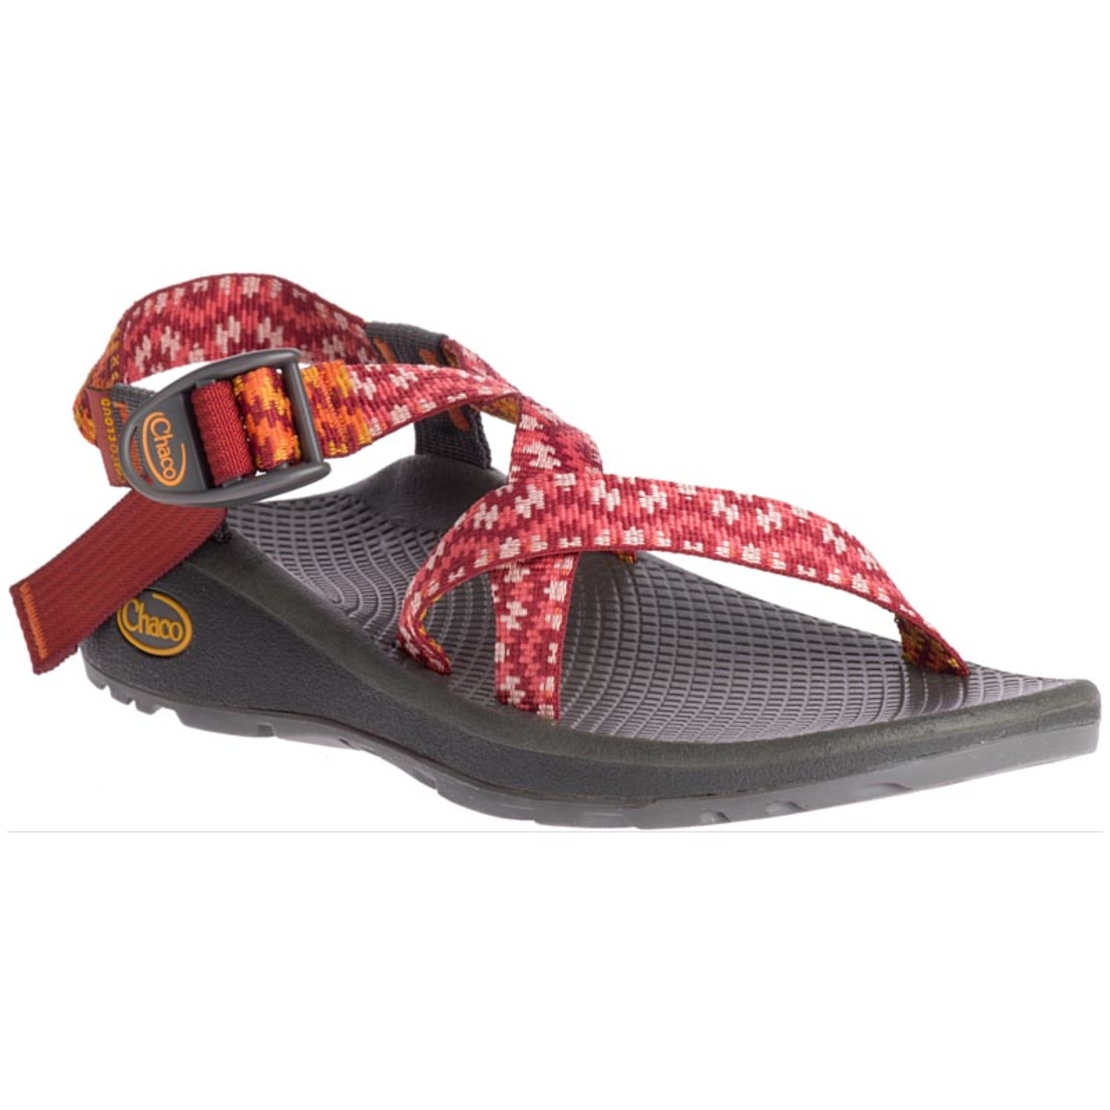 chaco  women's z/cloud צ'אקו נשים קלאווד - אדום